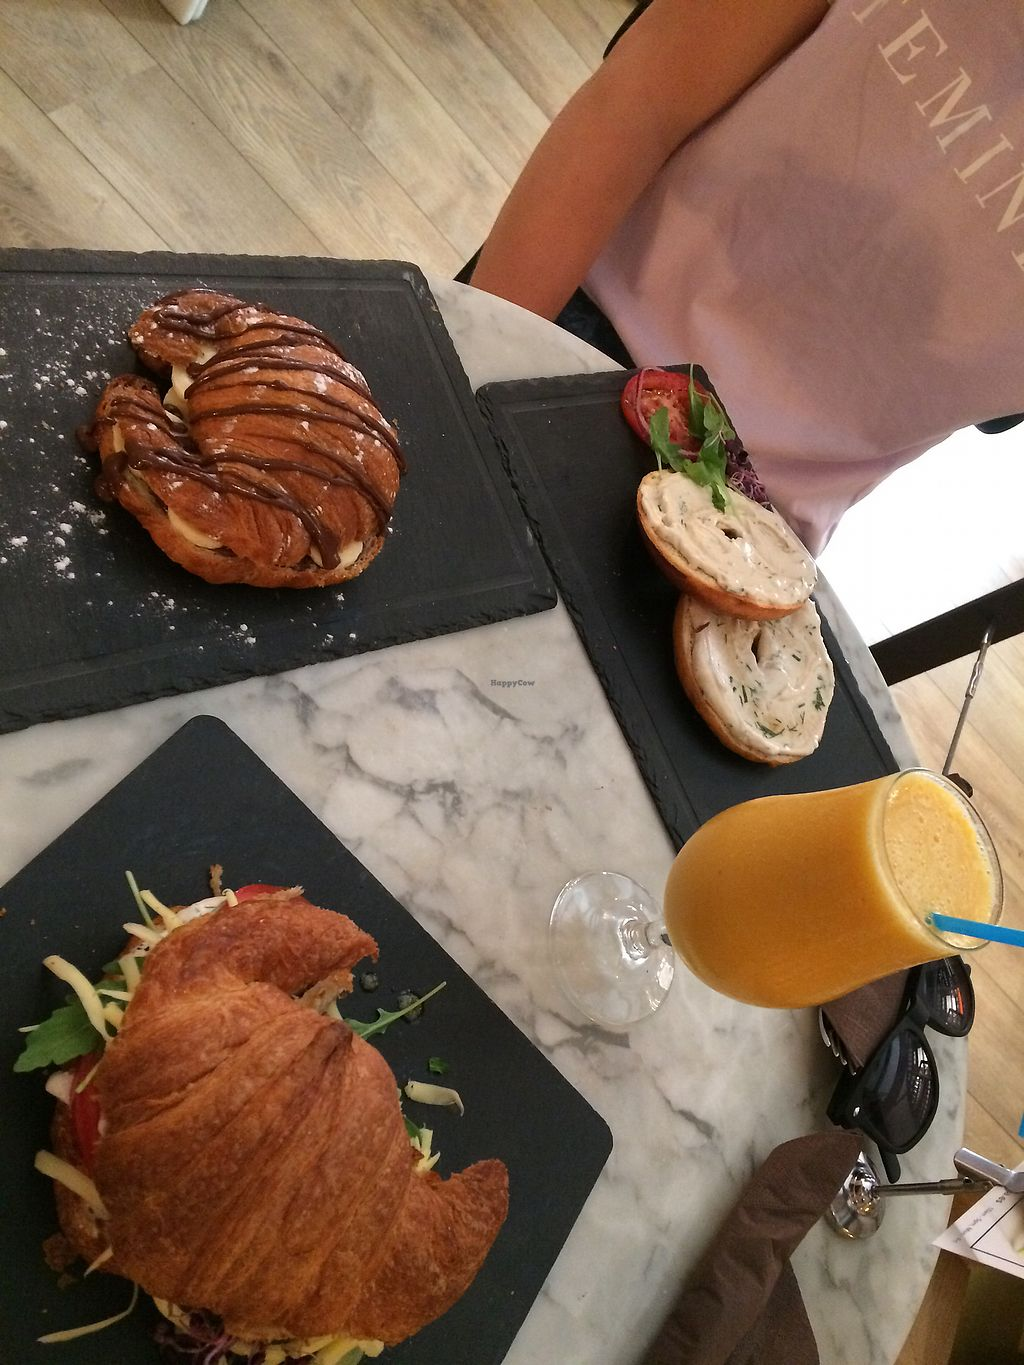 """Photo of Bagel  by <a href=""""/members/profile/holscarlett"""">holscarlett</a> <br/>Our brunch all together (minus one smoothie) <br/> September 8, 2017  - <a href='/contact/abuse/image/38083/302179'>Report</a>"""